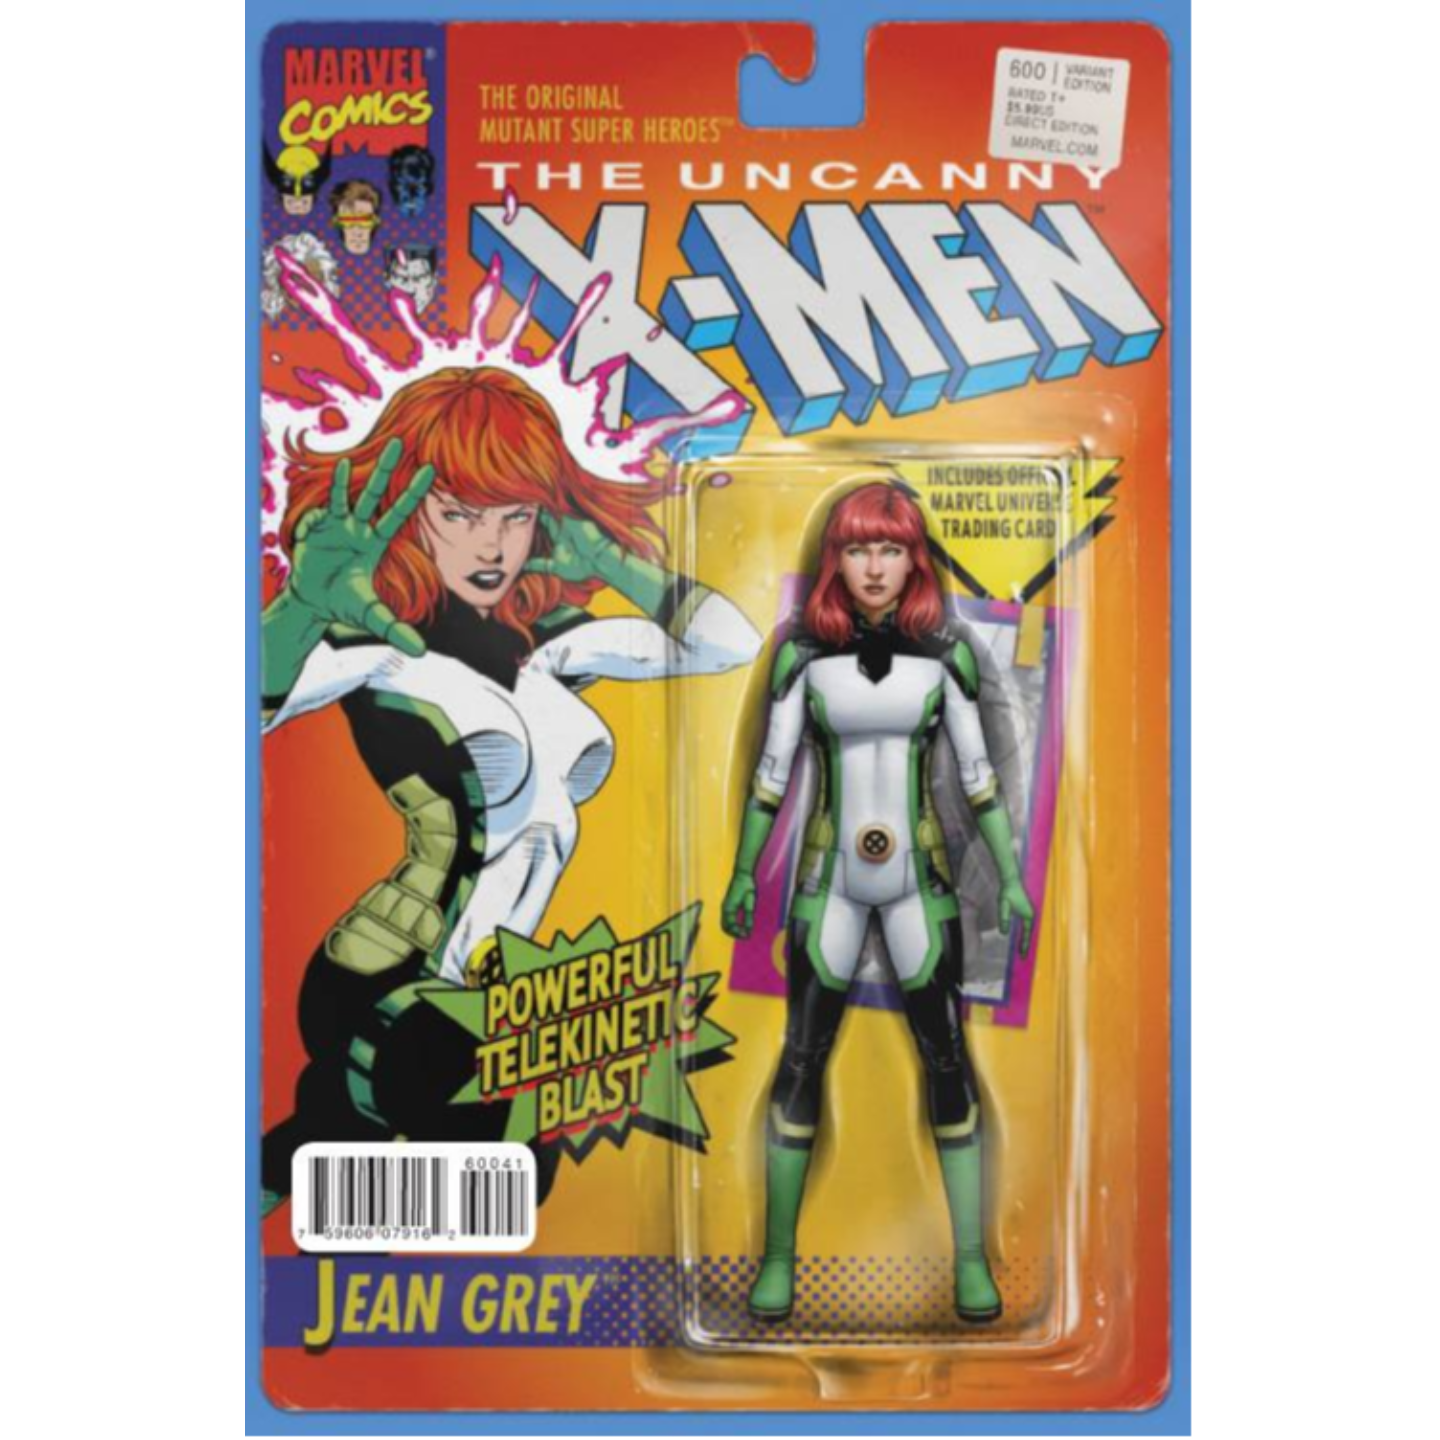 UNCANNY X-MEN #600 JOHN TYLER CHRISTOPHER ACTION FIGURE VARIANT